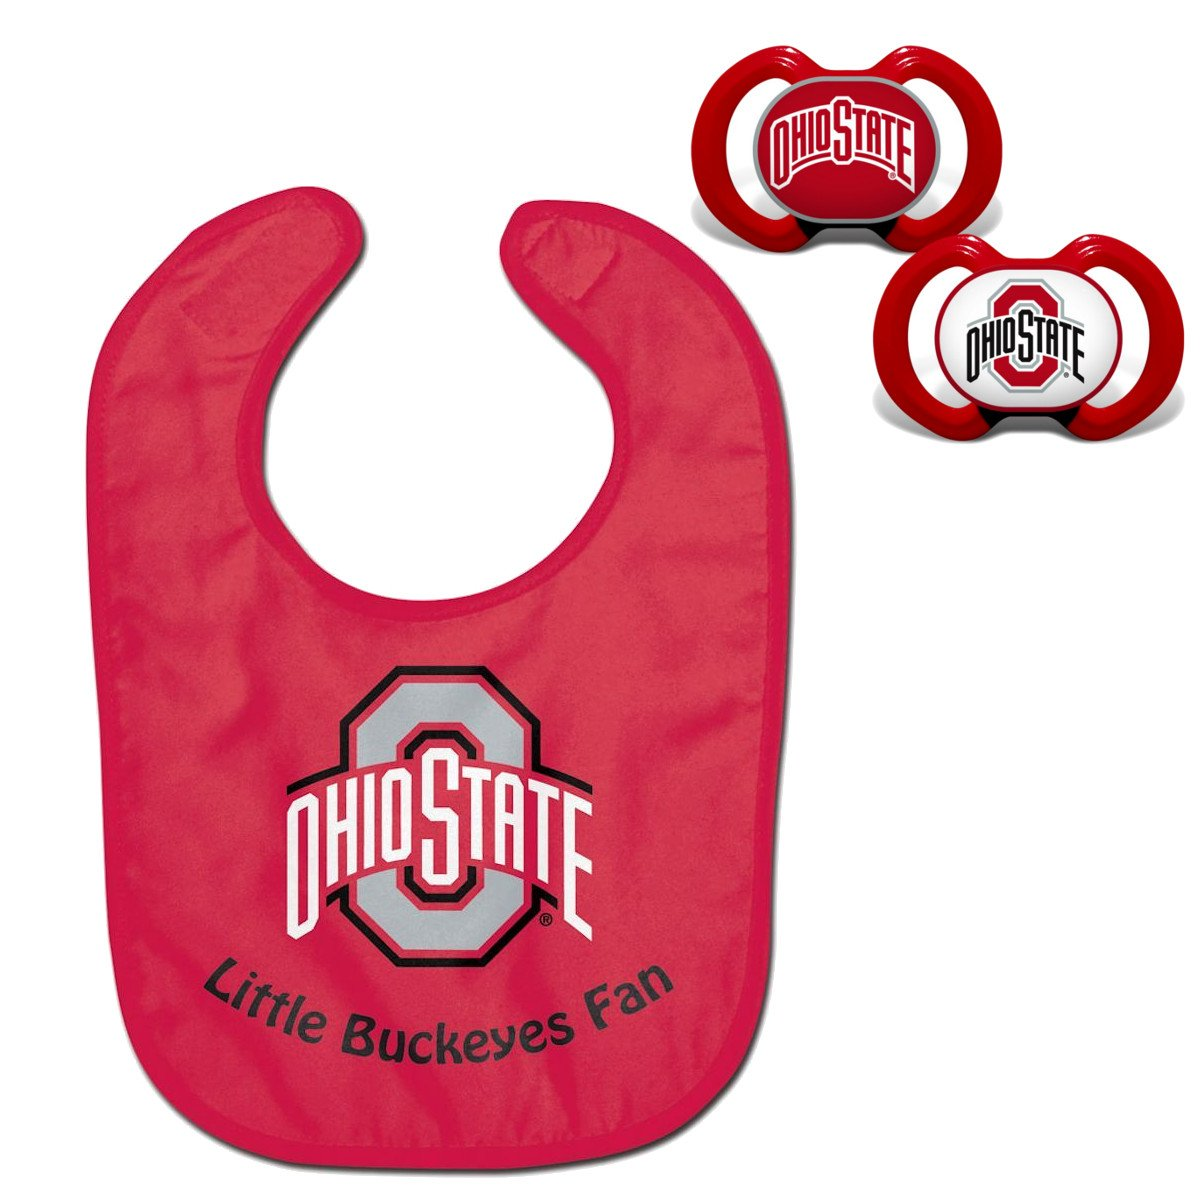 Start The Little Ones Out Early in Joining The Fan Club and Show College Support NCAA Official Fan Shop Authentic Baby Pacifier and Bib Set